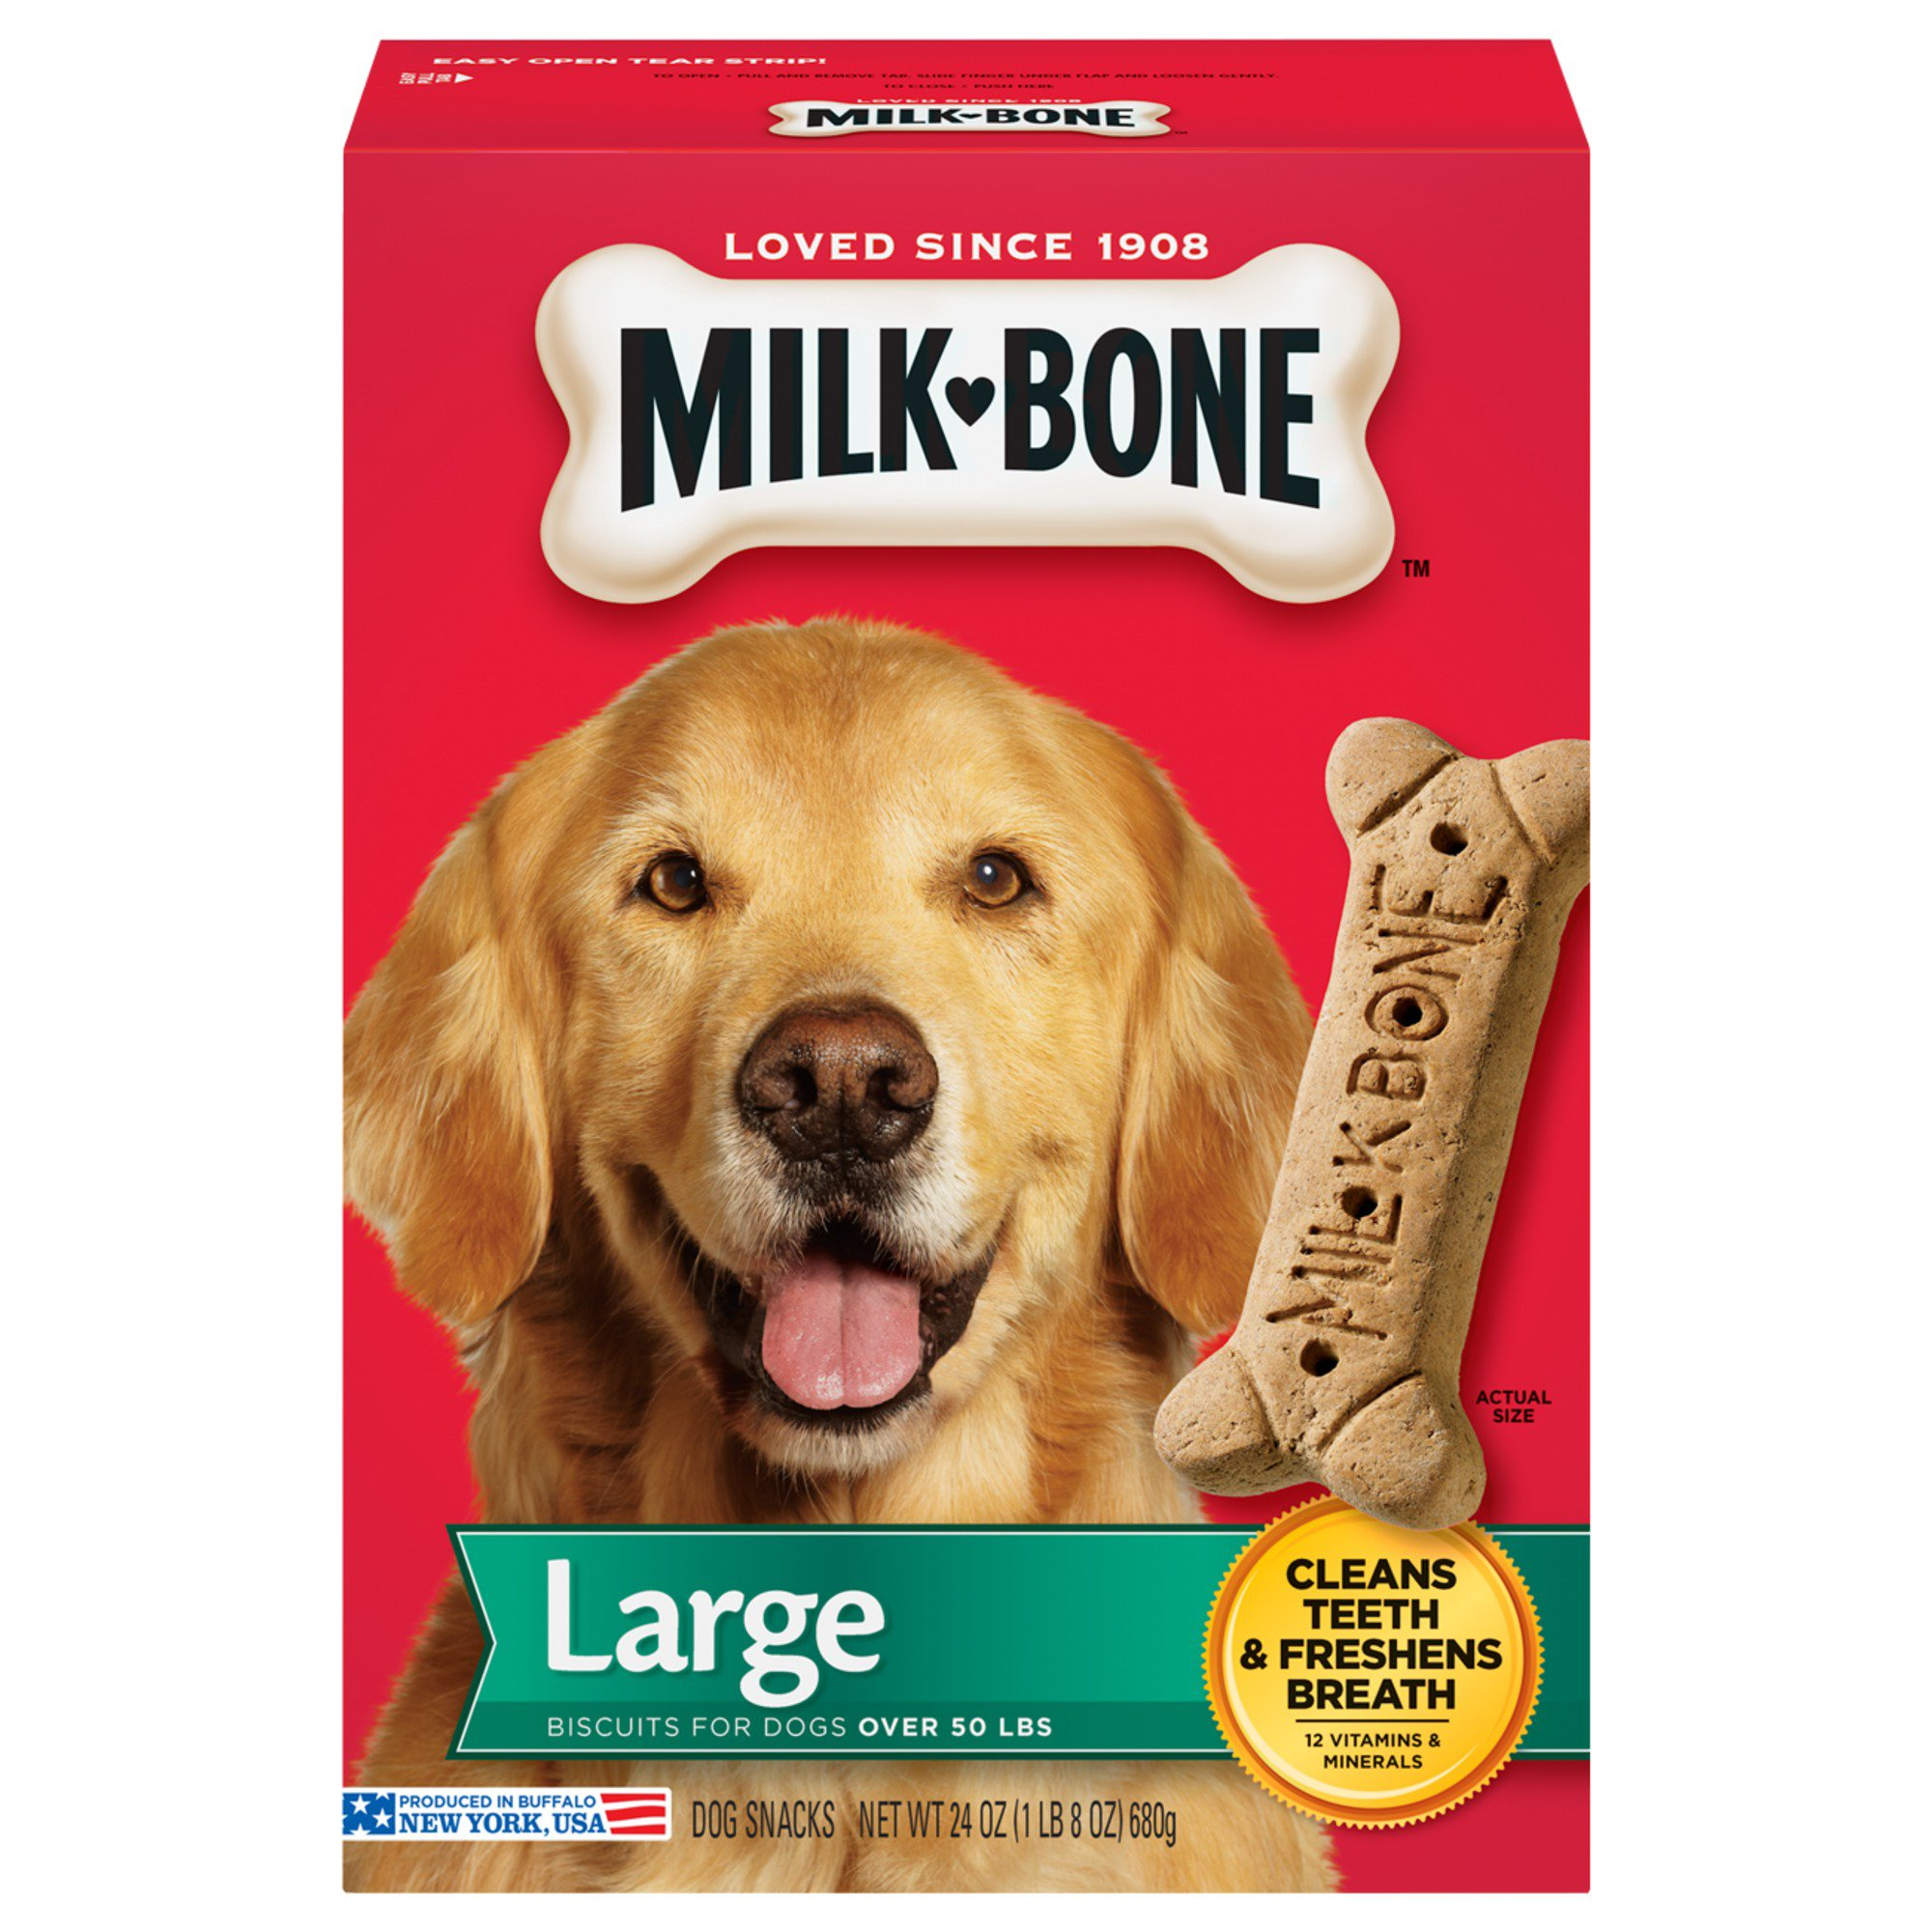 Milk-Bone Large Original Dog Biscuits